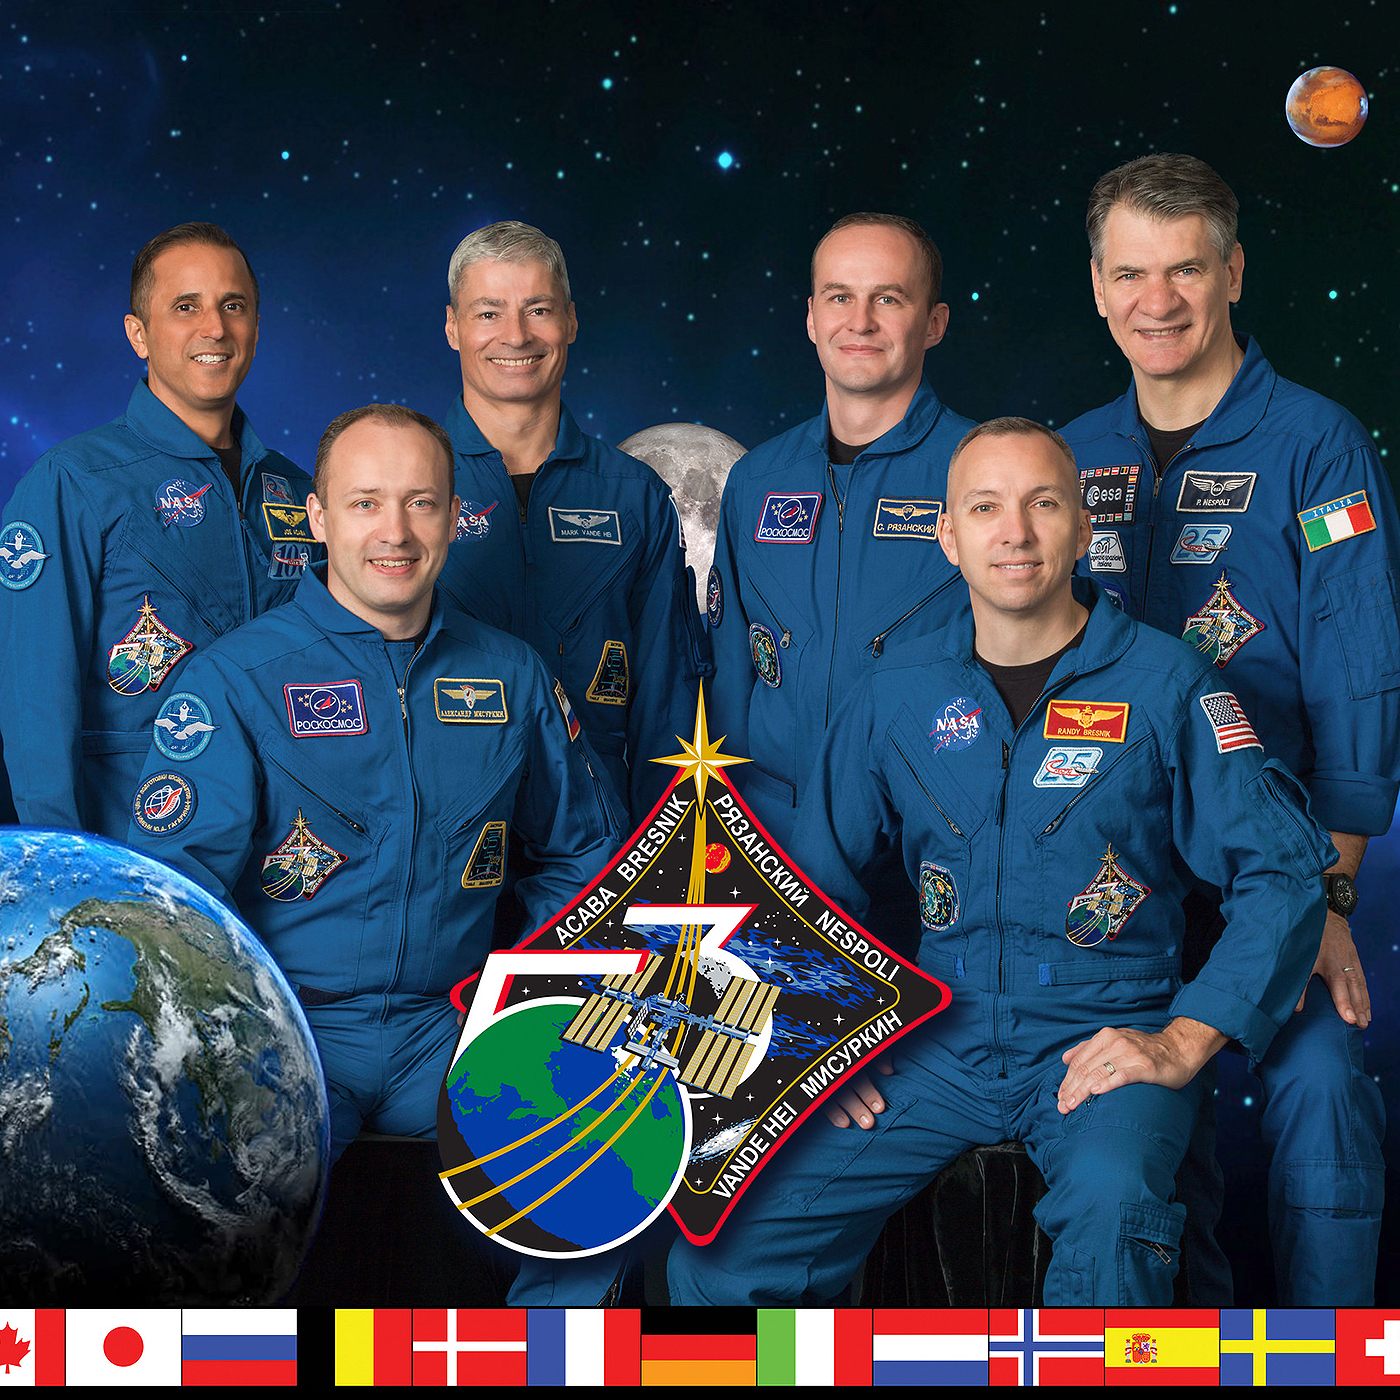 iss expedition53 crew